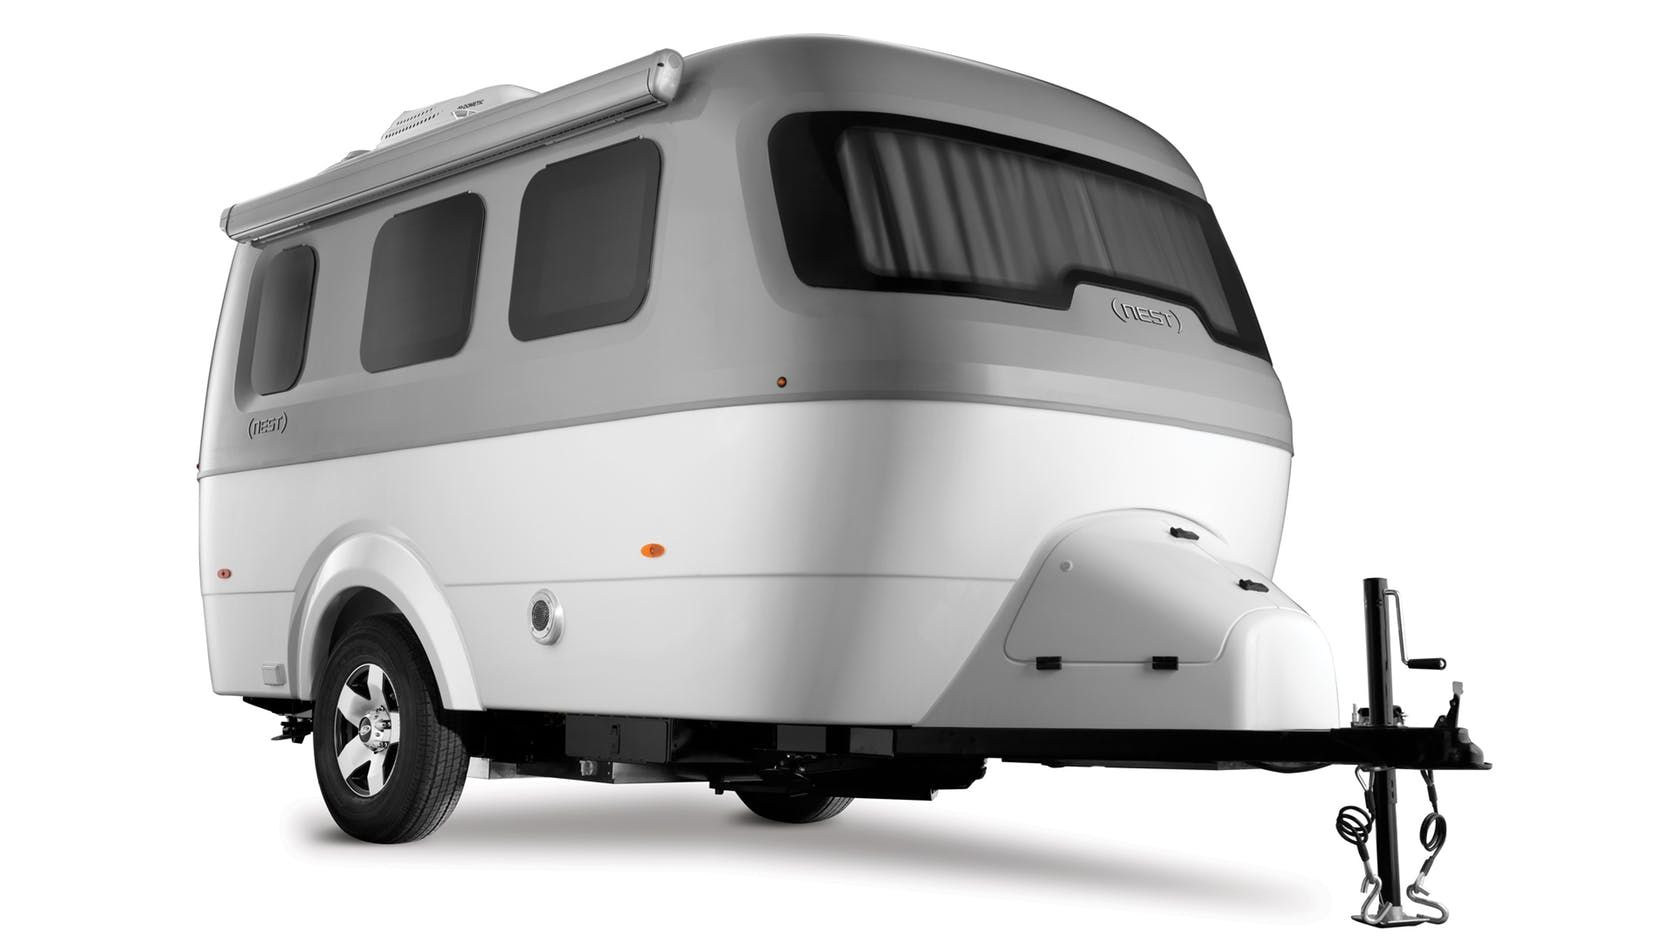 2020 Airstream Nest by Airstream™ in 2020 (With images ...